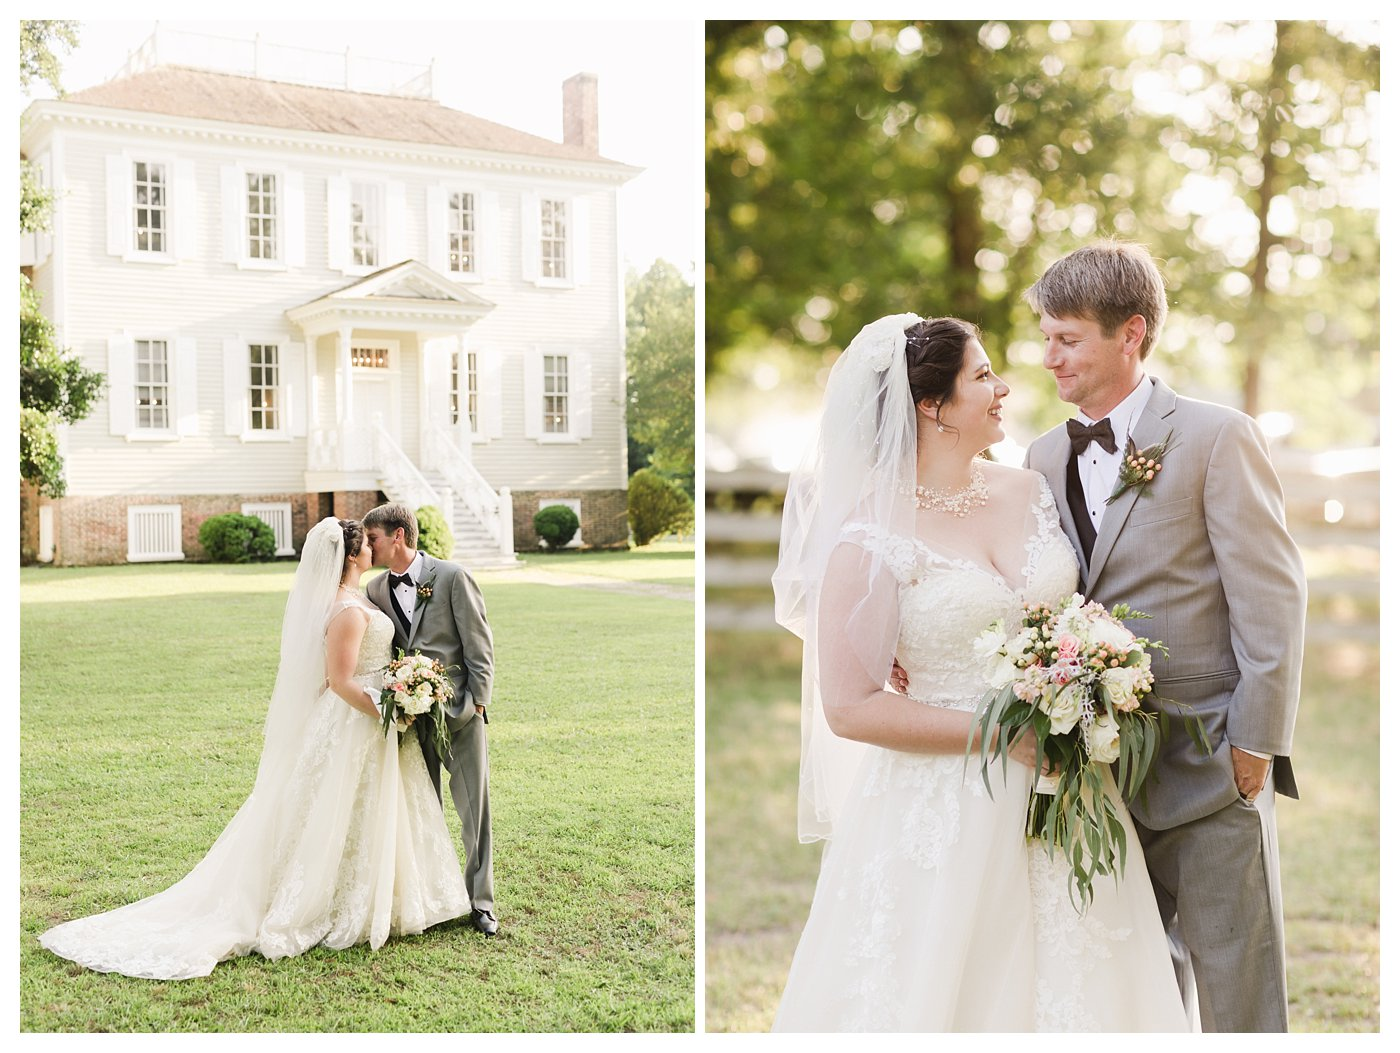 Historic_Hope_Plantation_Wedding_Photography_Sage_Summer_Outdoor_Windsor_NC_0036.jpg